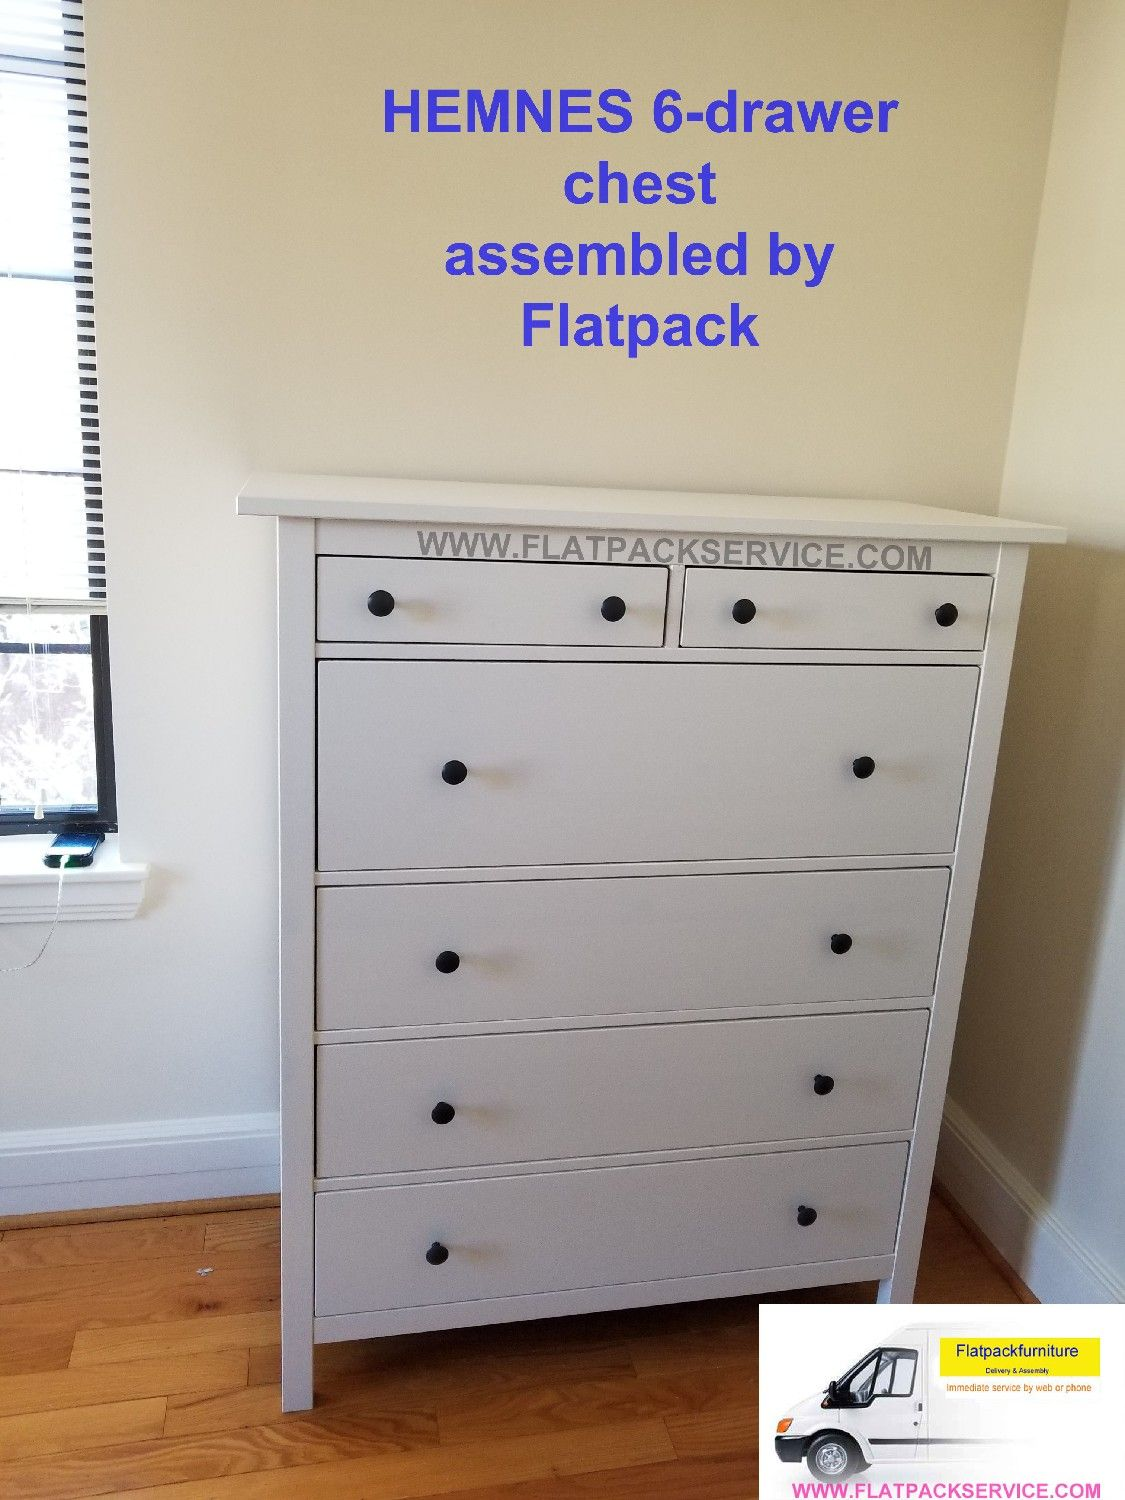 Ikea Hemnes 6 Drawer Chest Article Number Embled By Flatpack Embly